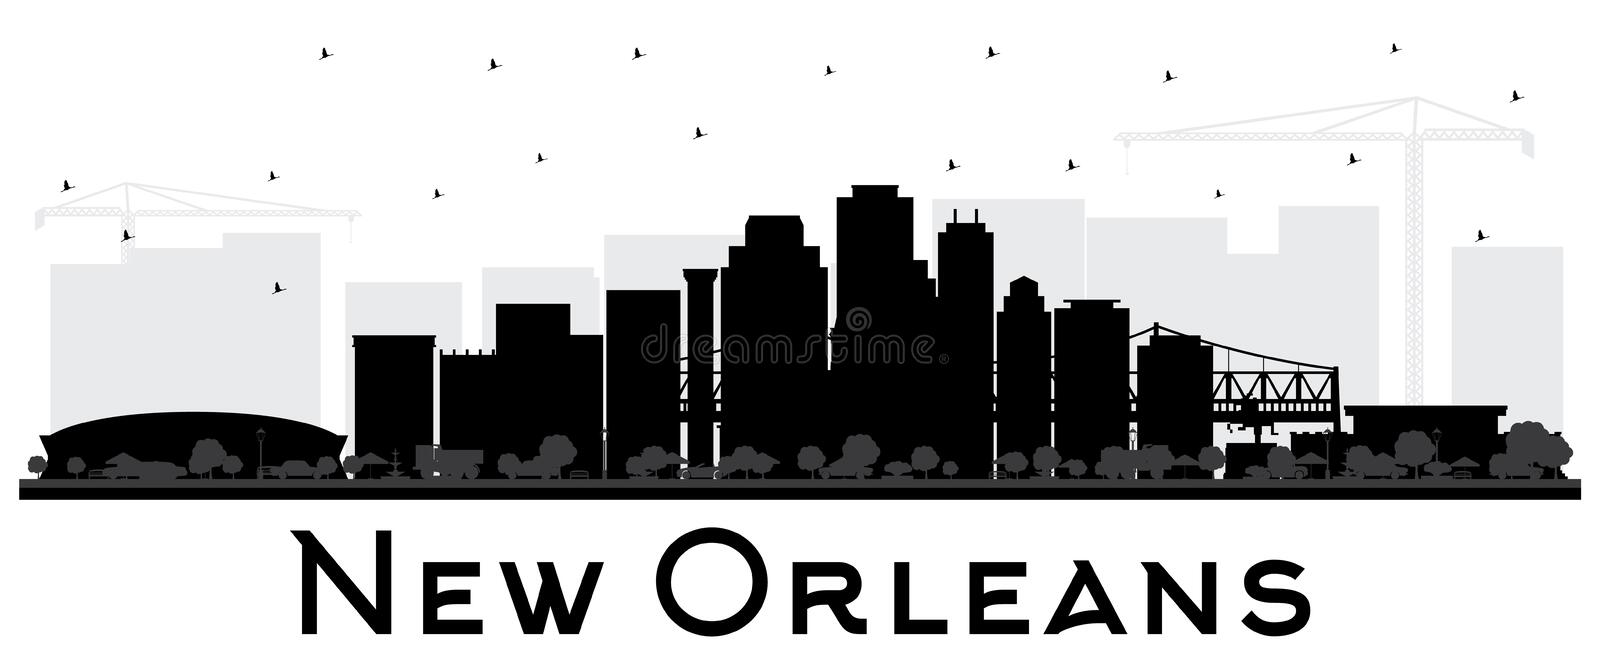 New Orleans Louisiana City Skyline Silhouette with Black Buildings Isolated on White. Vector Illustration. Business Travel and Tourism Concept with Modern vector illustration